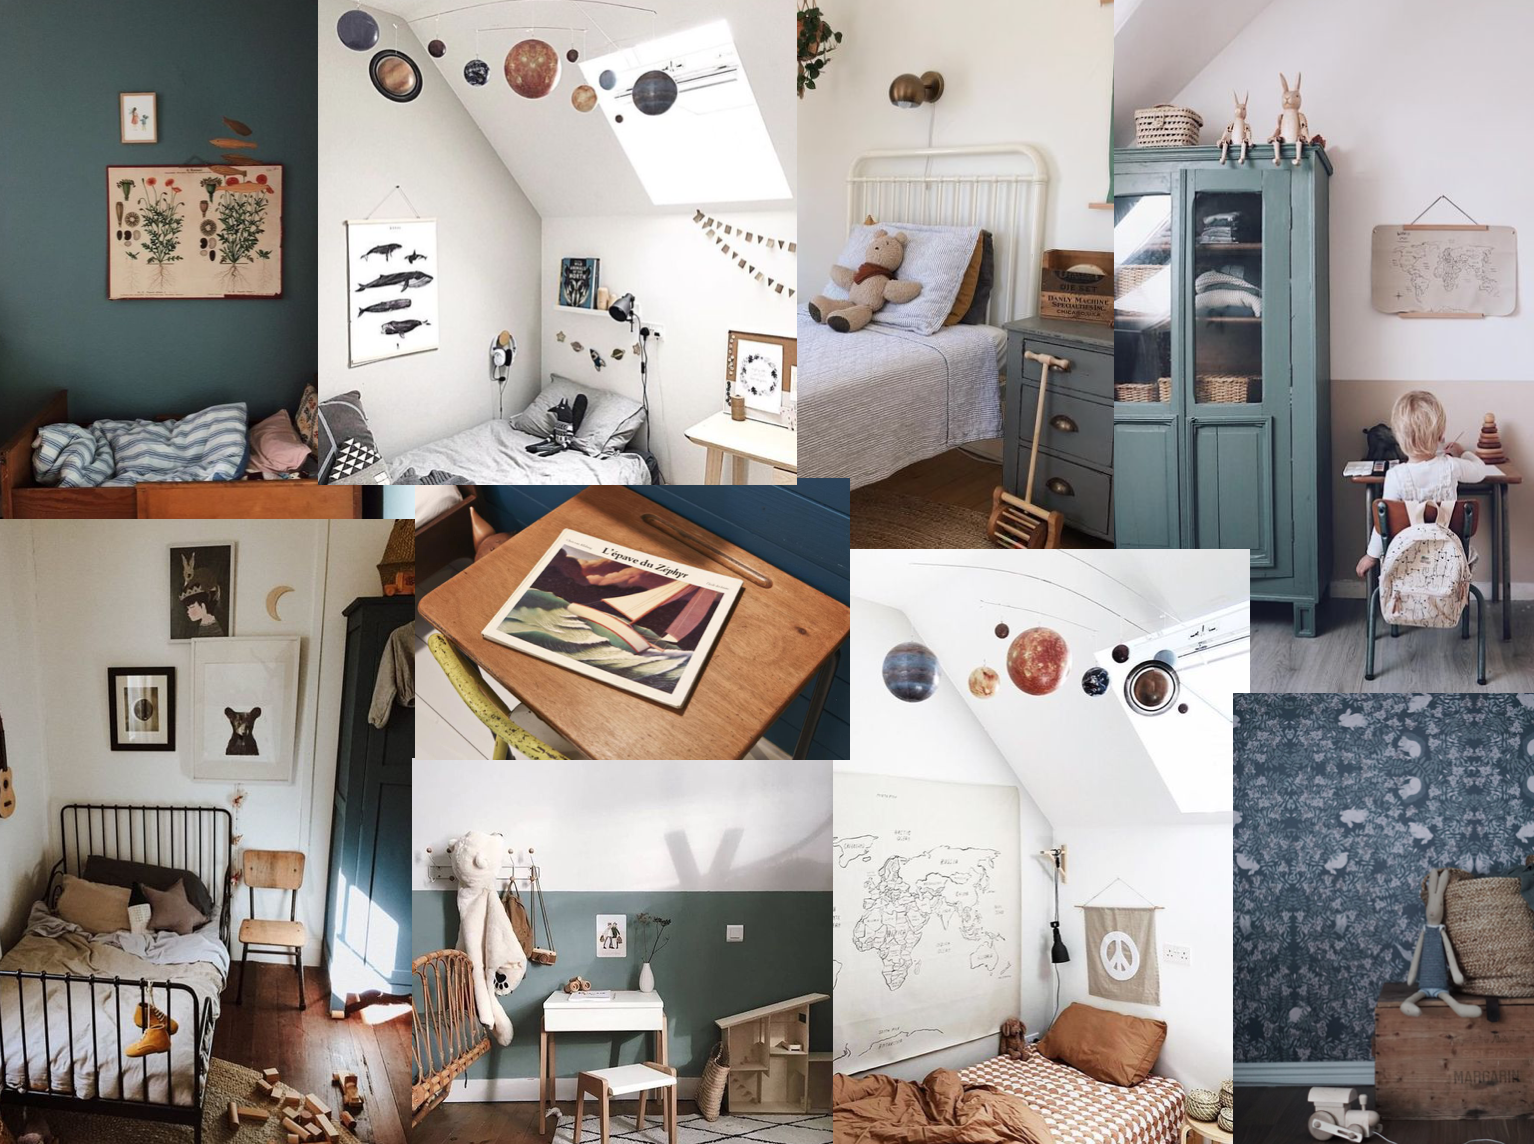 moodbaord quarto benjamin - Moodboard do quartinho do Benjamin